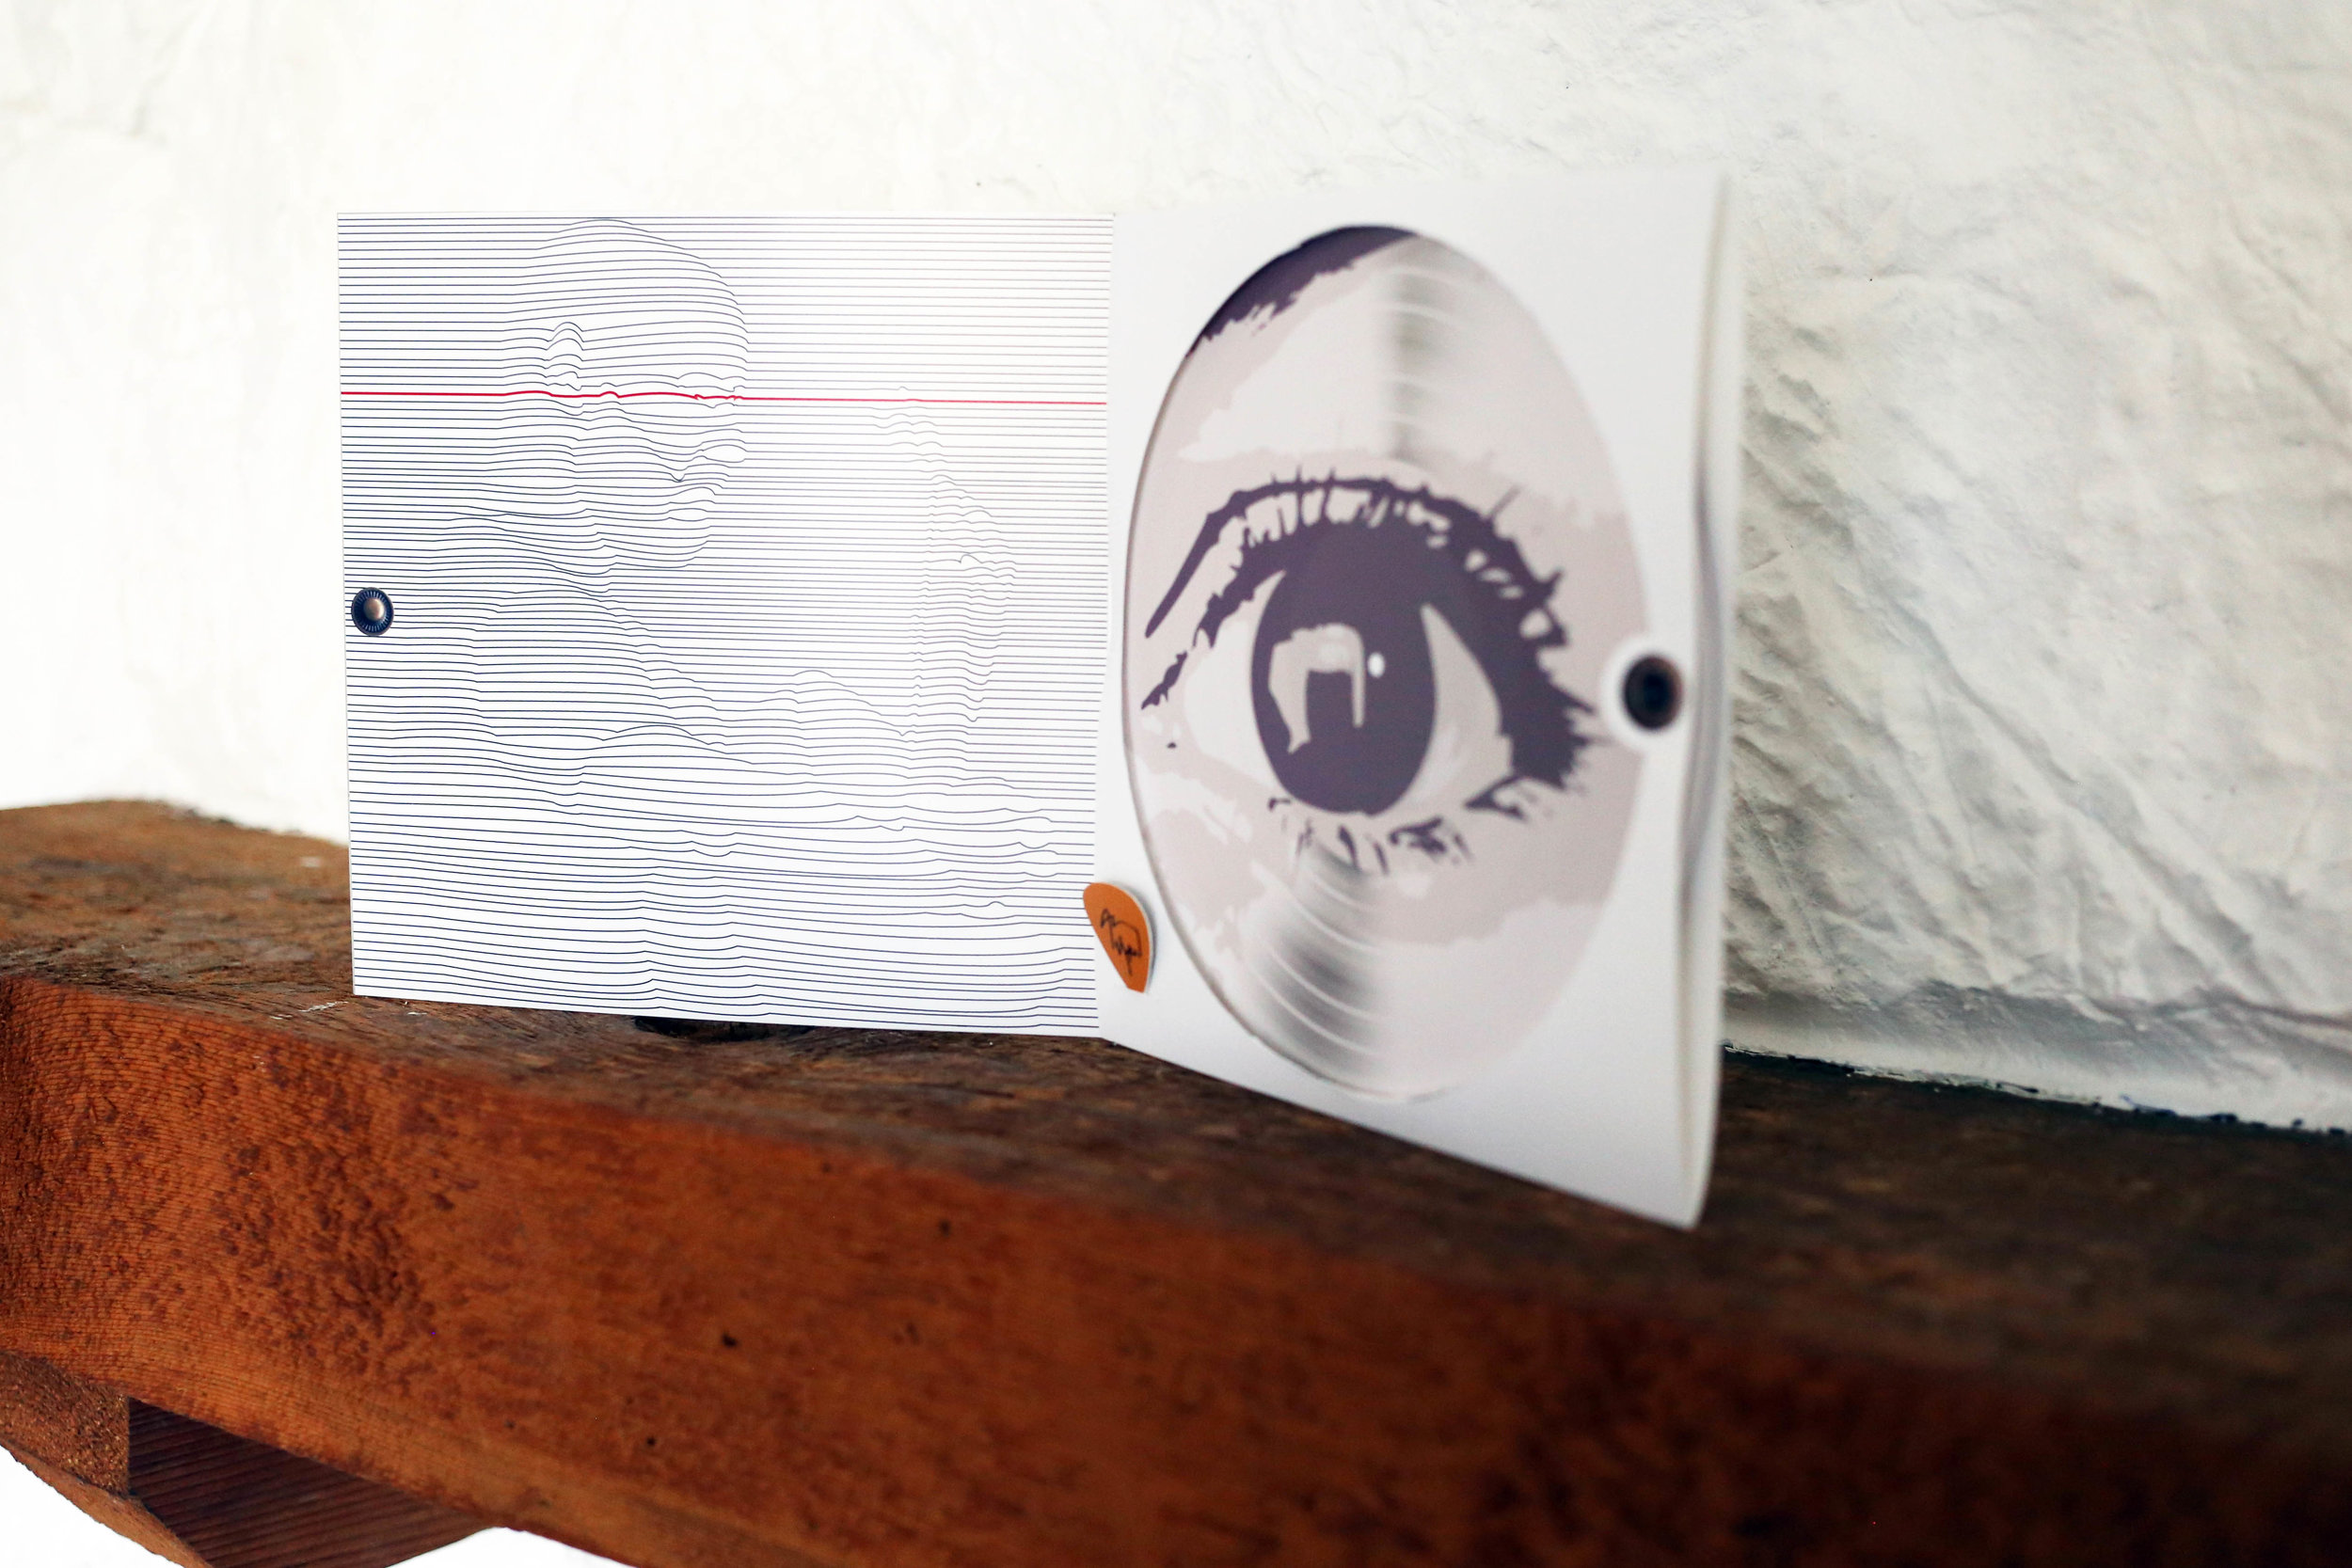 Contrasting expressive eyes are shown on each side of the vinyl record,as Andy's instrumentals can be interpreted differently from listener to listener. Additionally, a portrait of Andy is shown on the inside, drawn through lines, illustrating the feel of vibrating guitar strings.